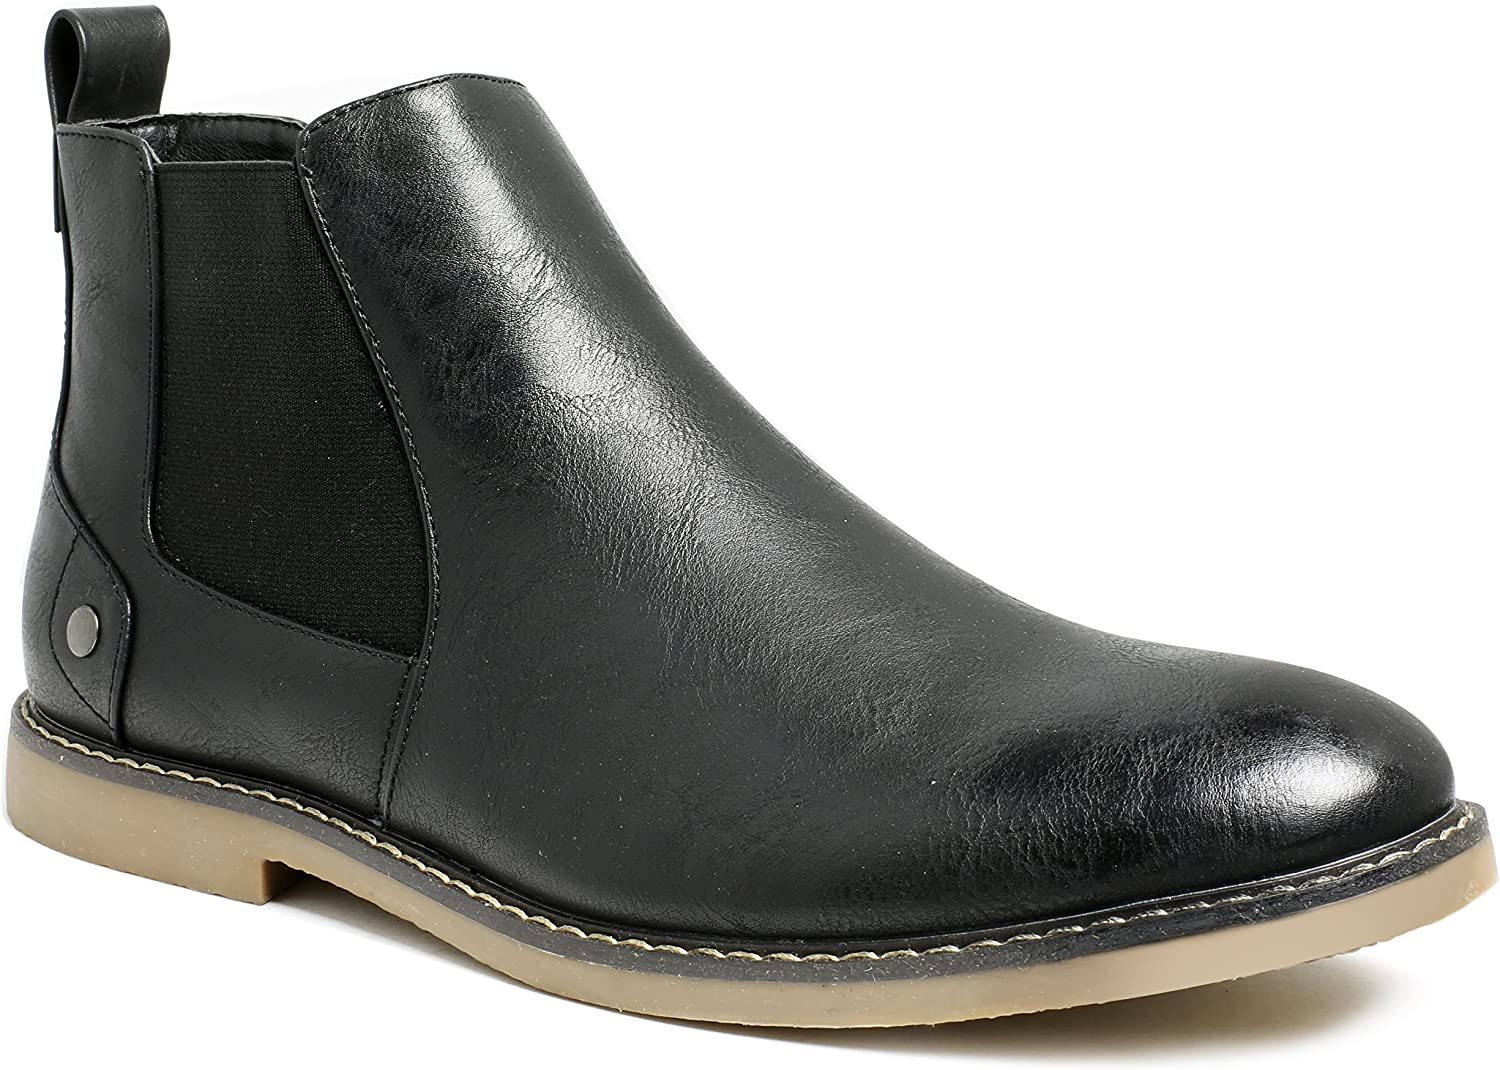 PARTY Mens Chelsea Boots Formal Dress Elastic Casual Ankle Boots for Men Black 11